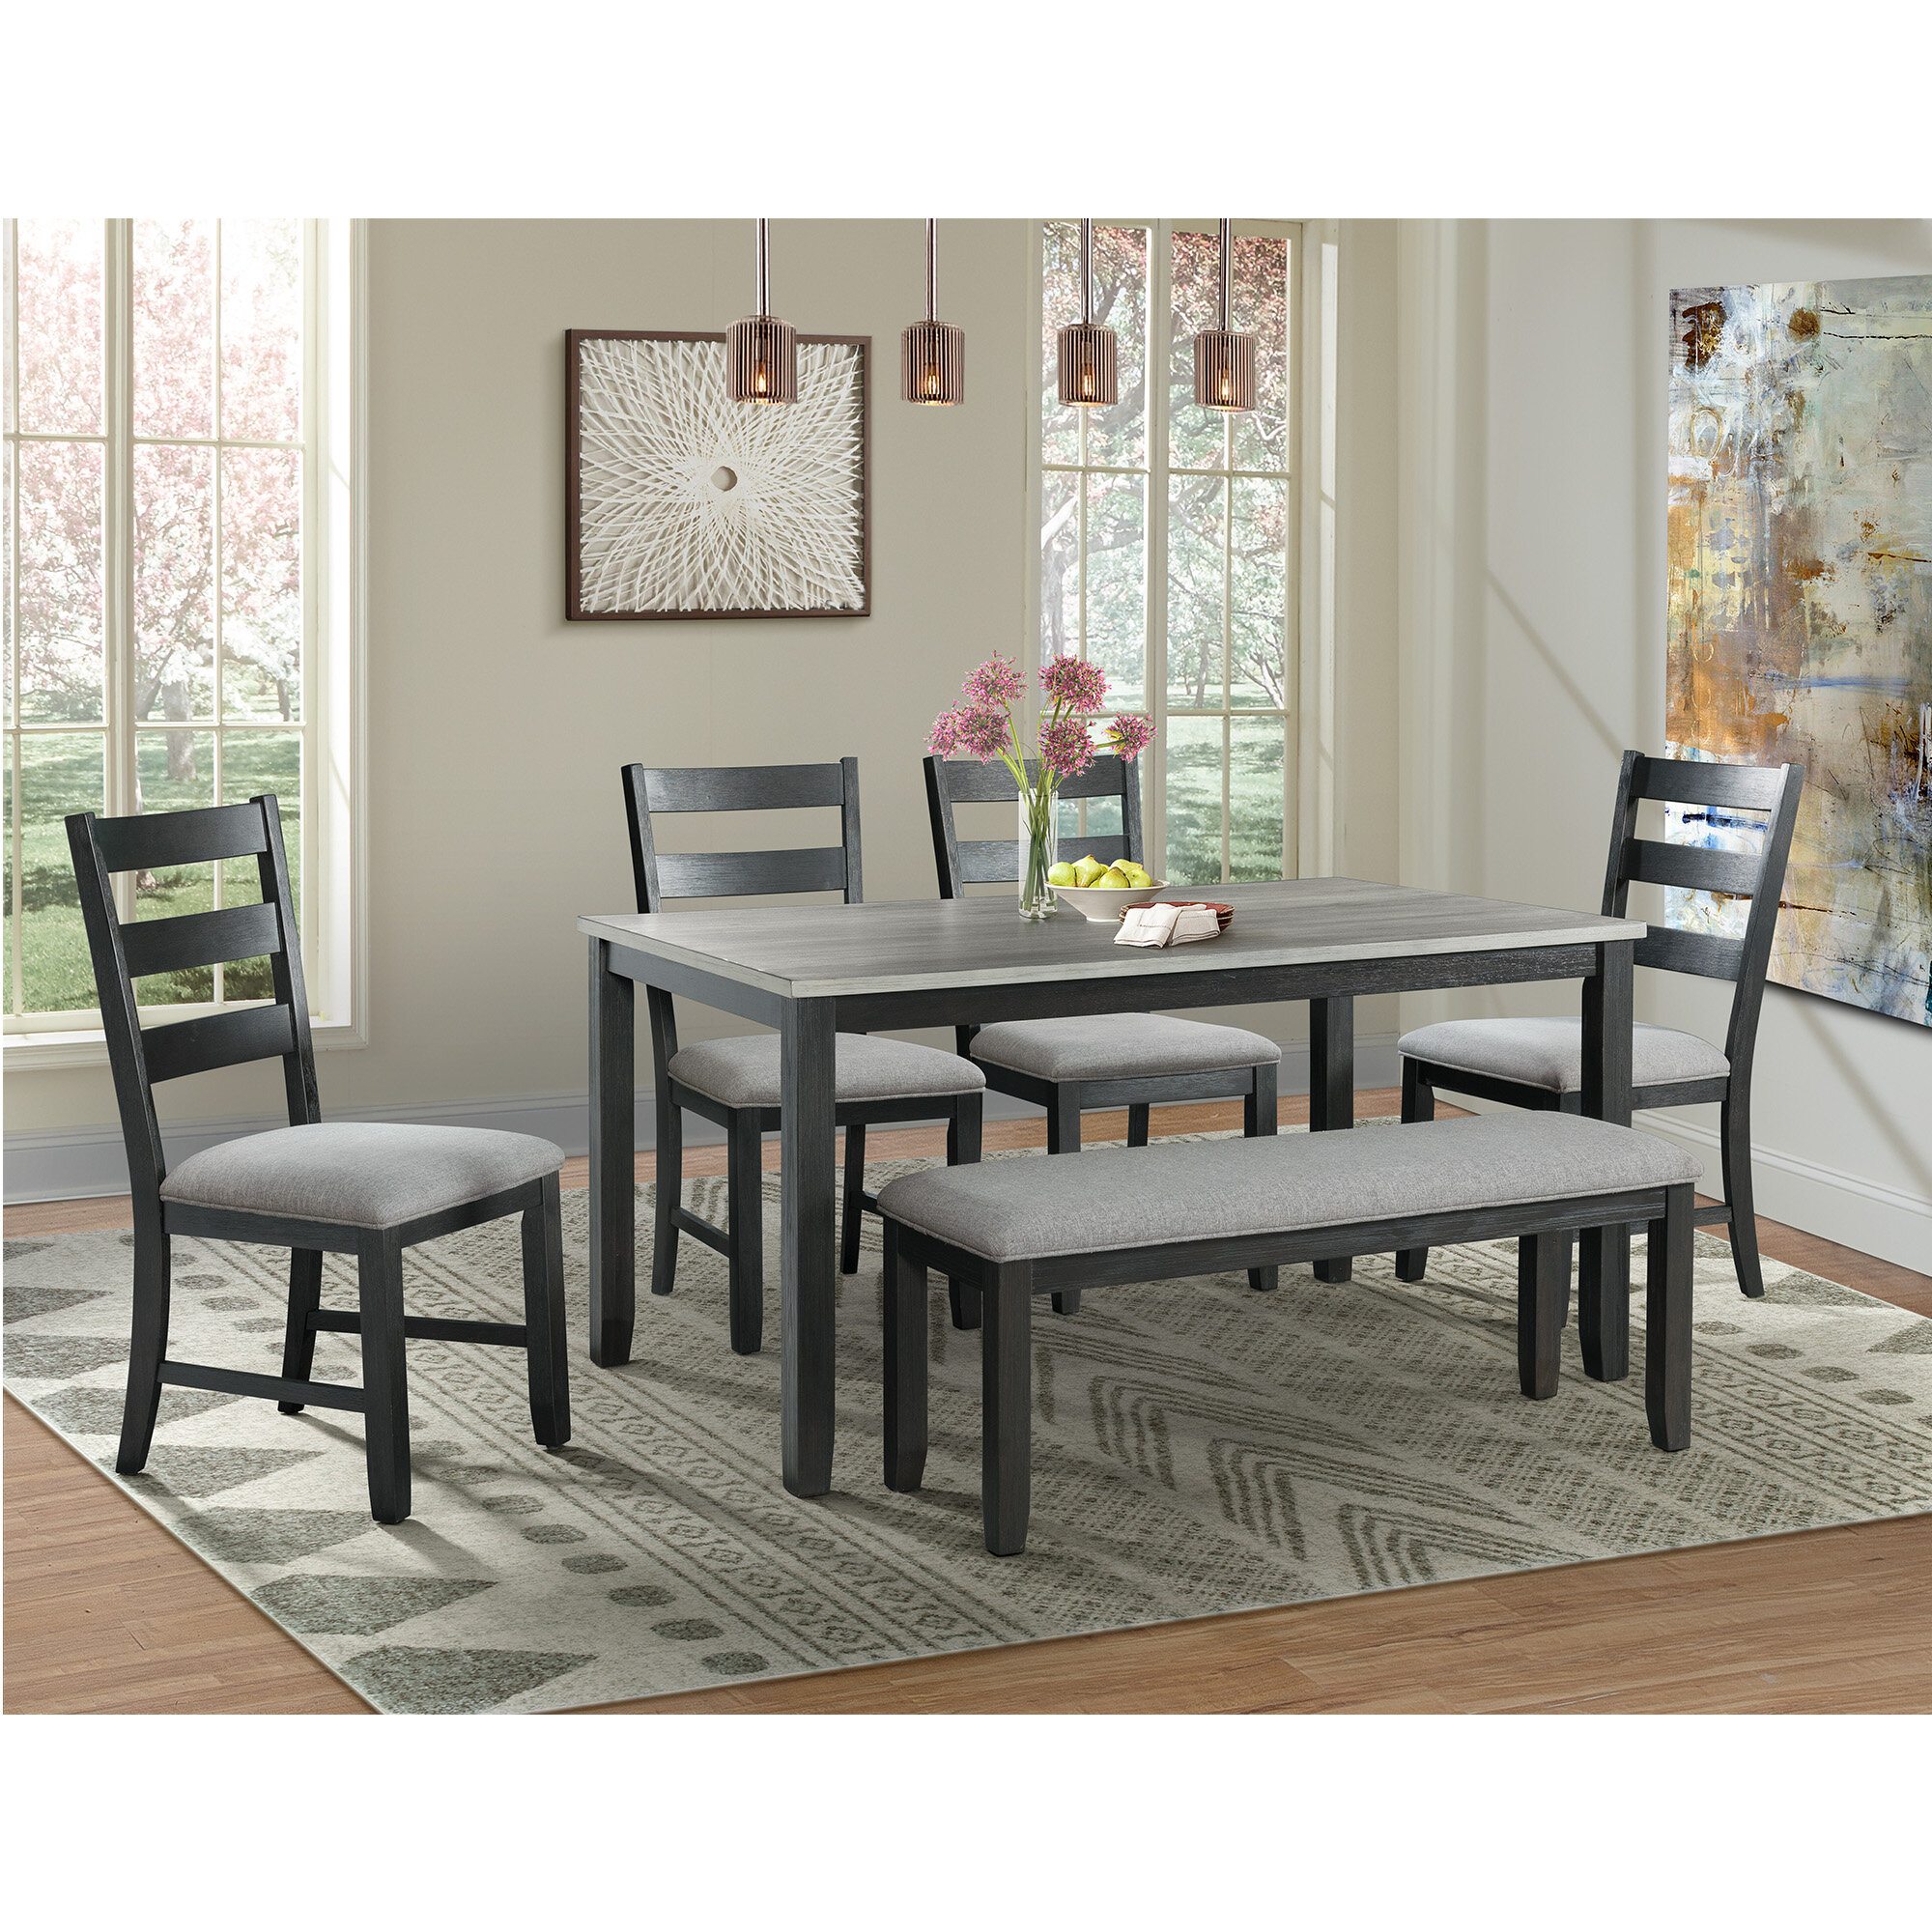 Seats 6 Kitchen Dining Room Sets You Ll Love In 2021 Wayfair Ca